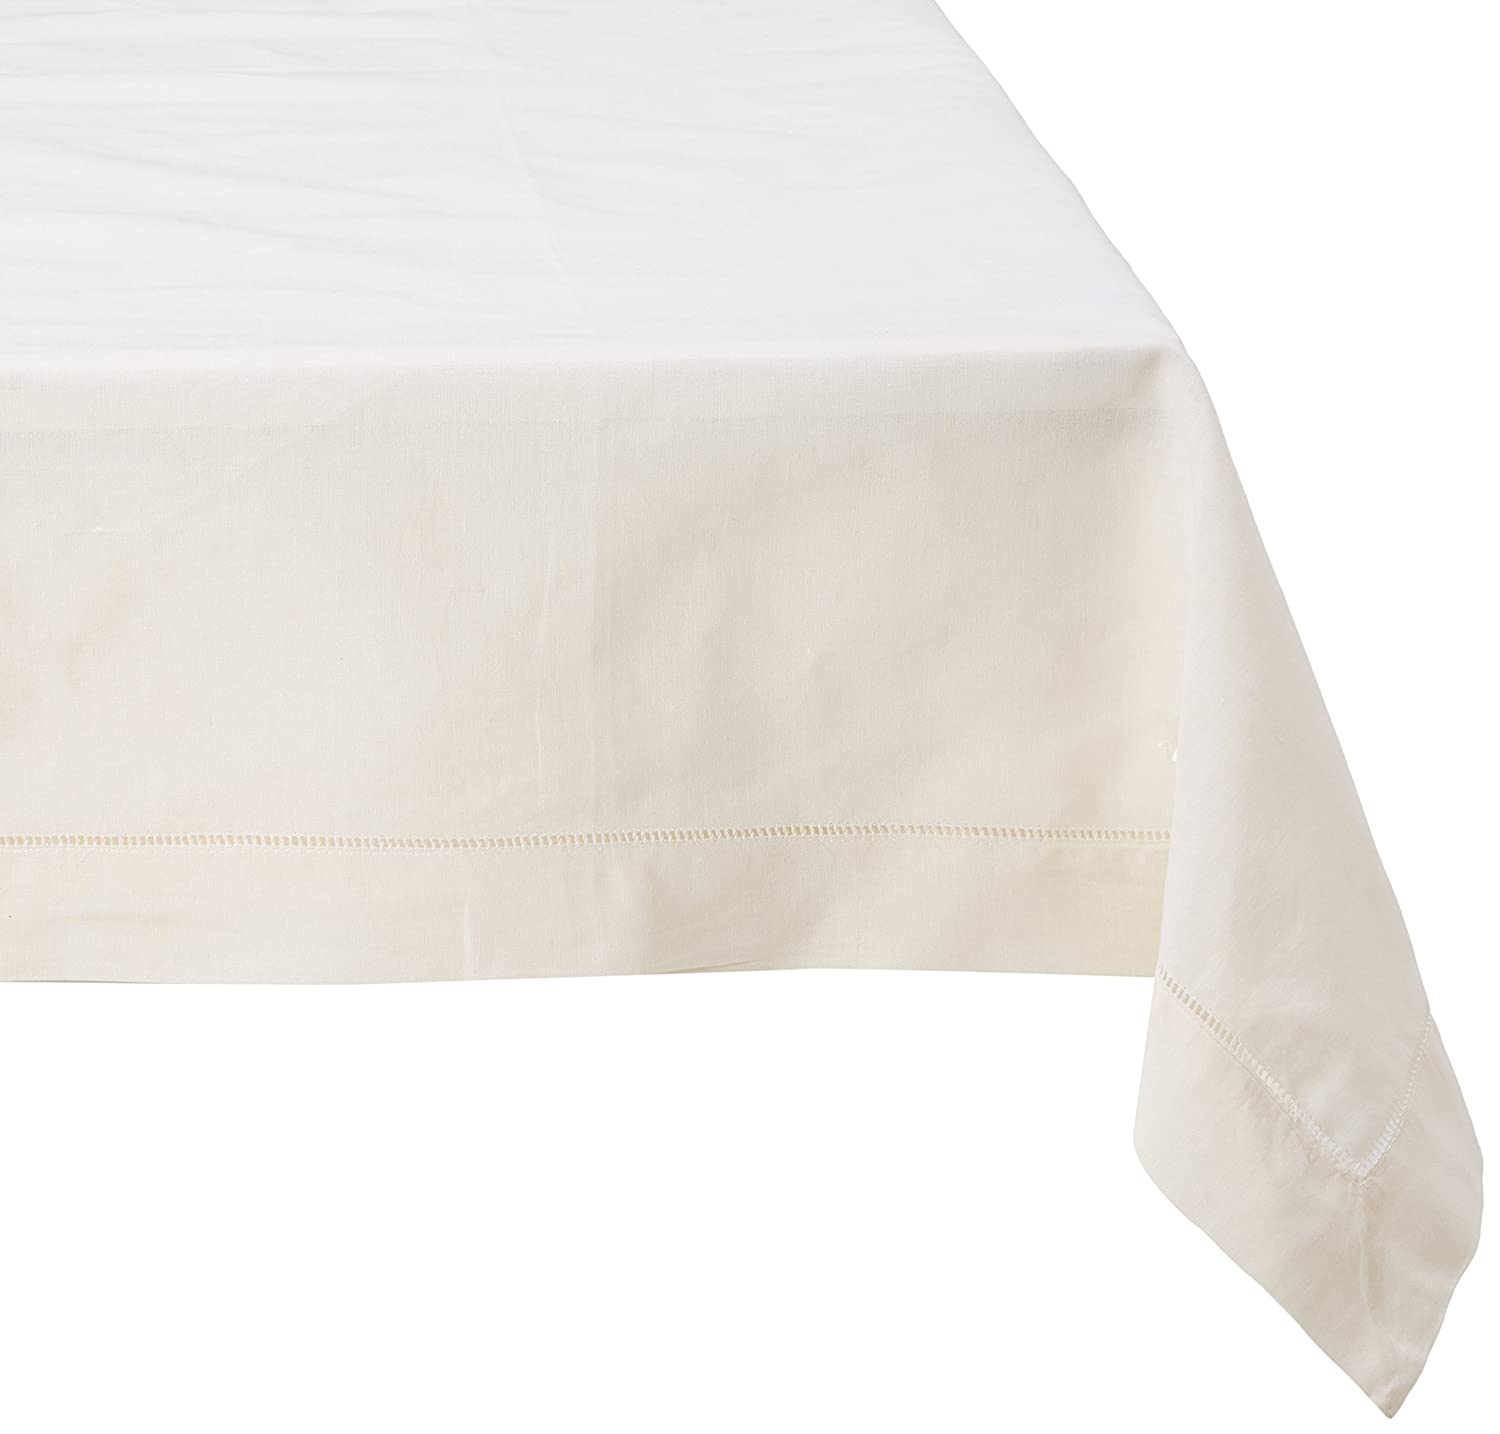 SARO LIFESTYLE 6100.E72S Hemstitched Cotton and Linen Tablecloth Ecru 72 72